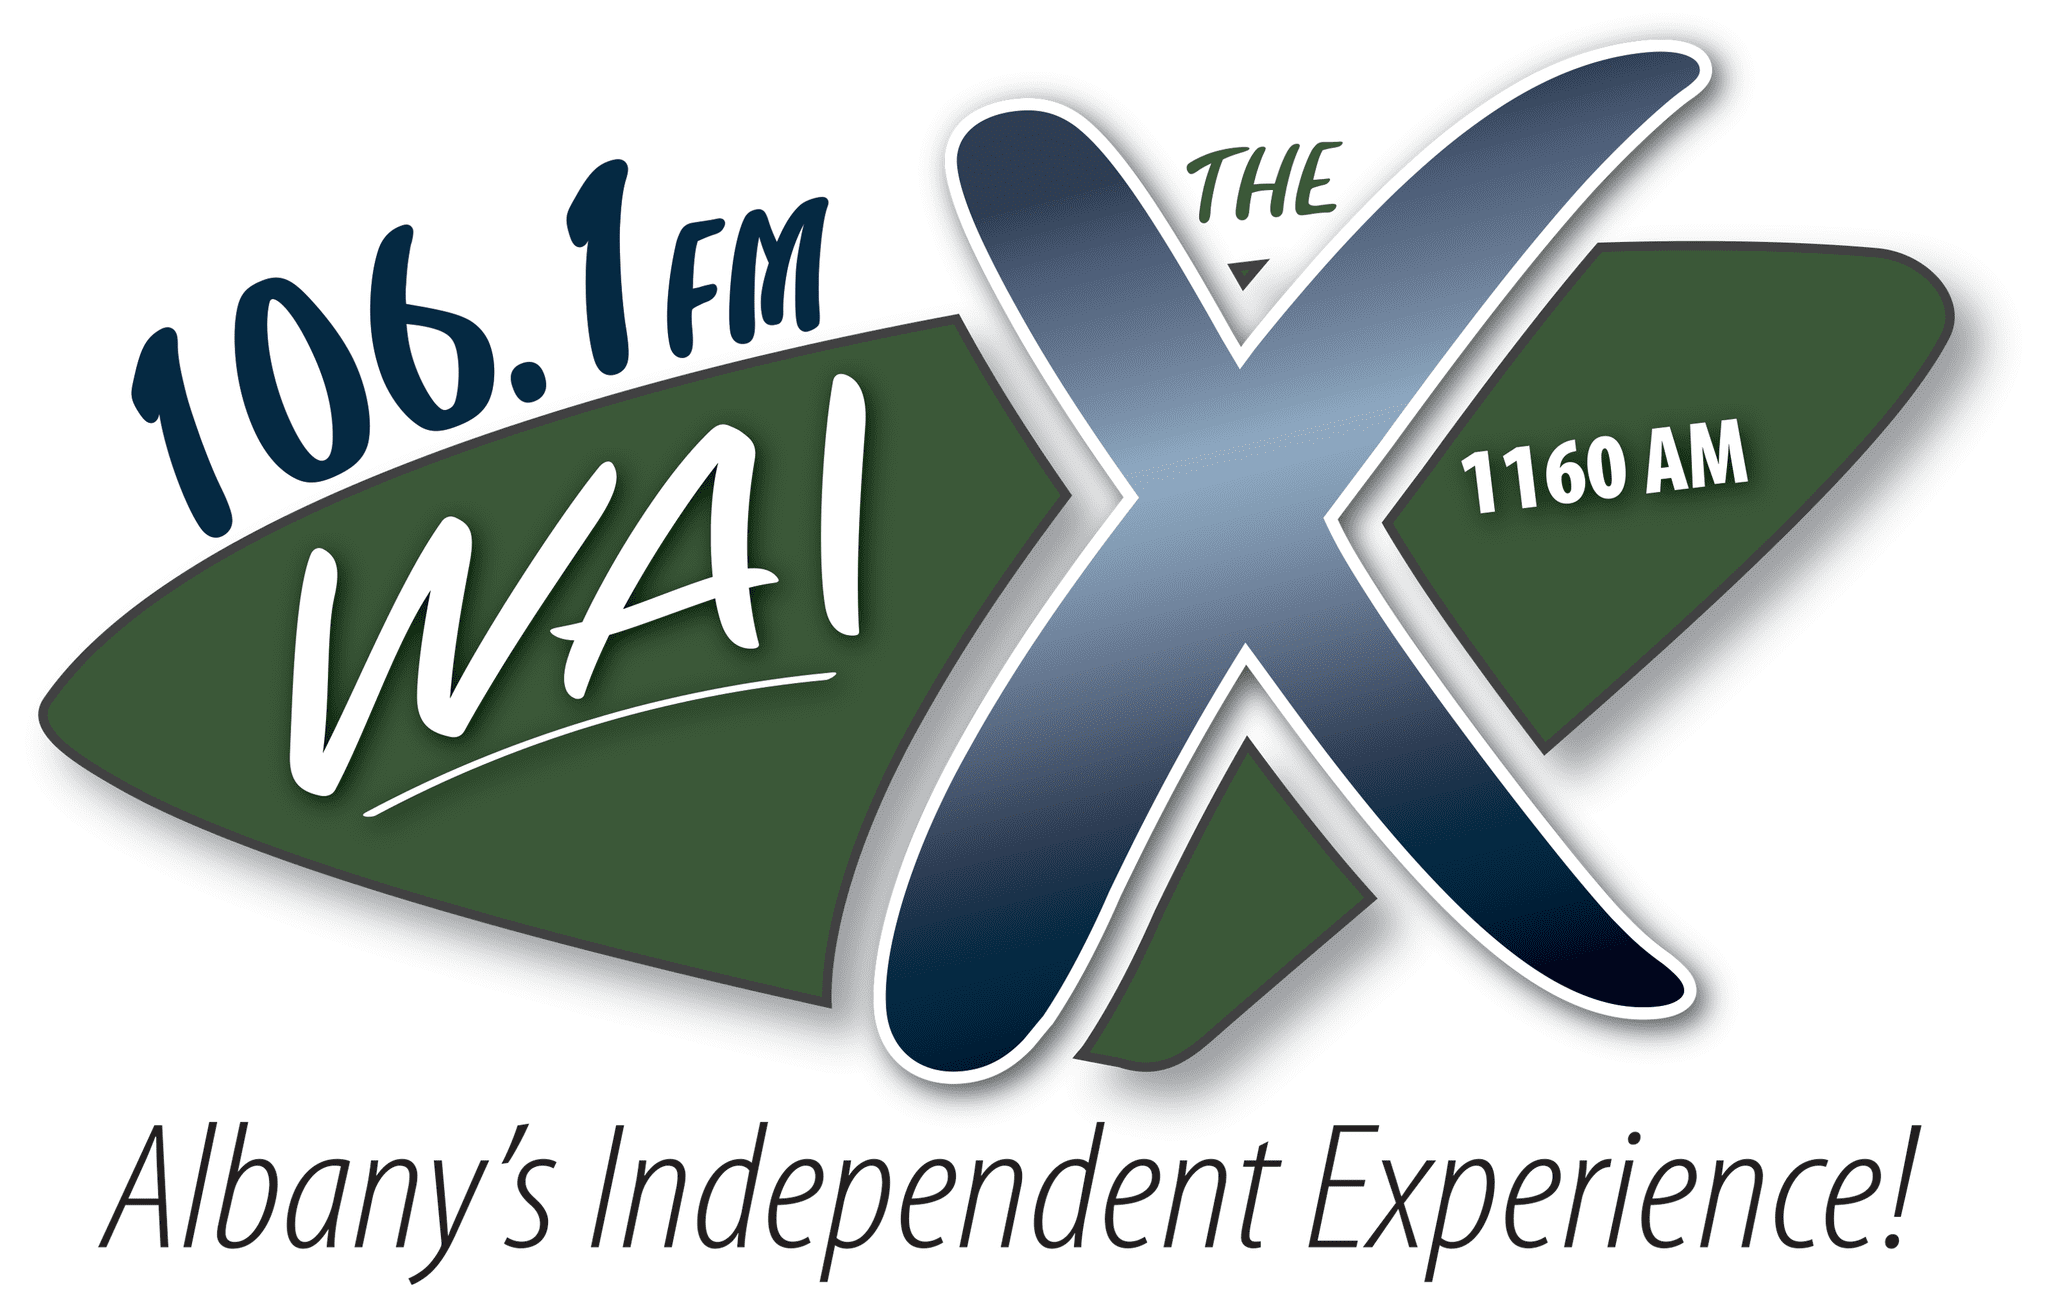 The X moves to AM, 106.1 WAIX FM is now 'The Jockey,' a Top 40 program